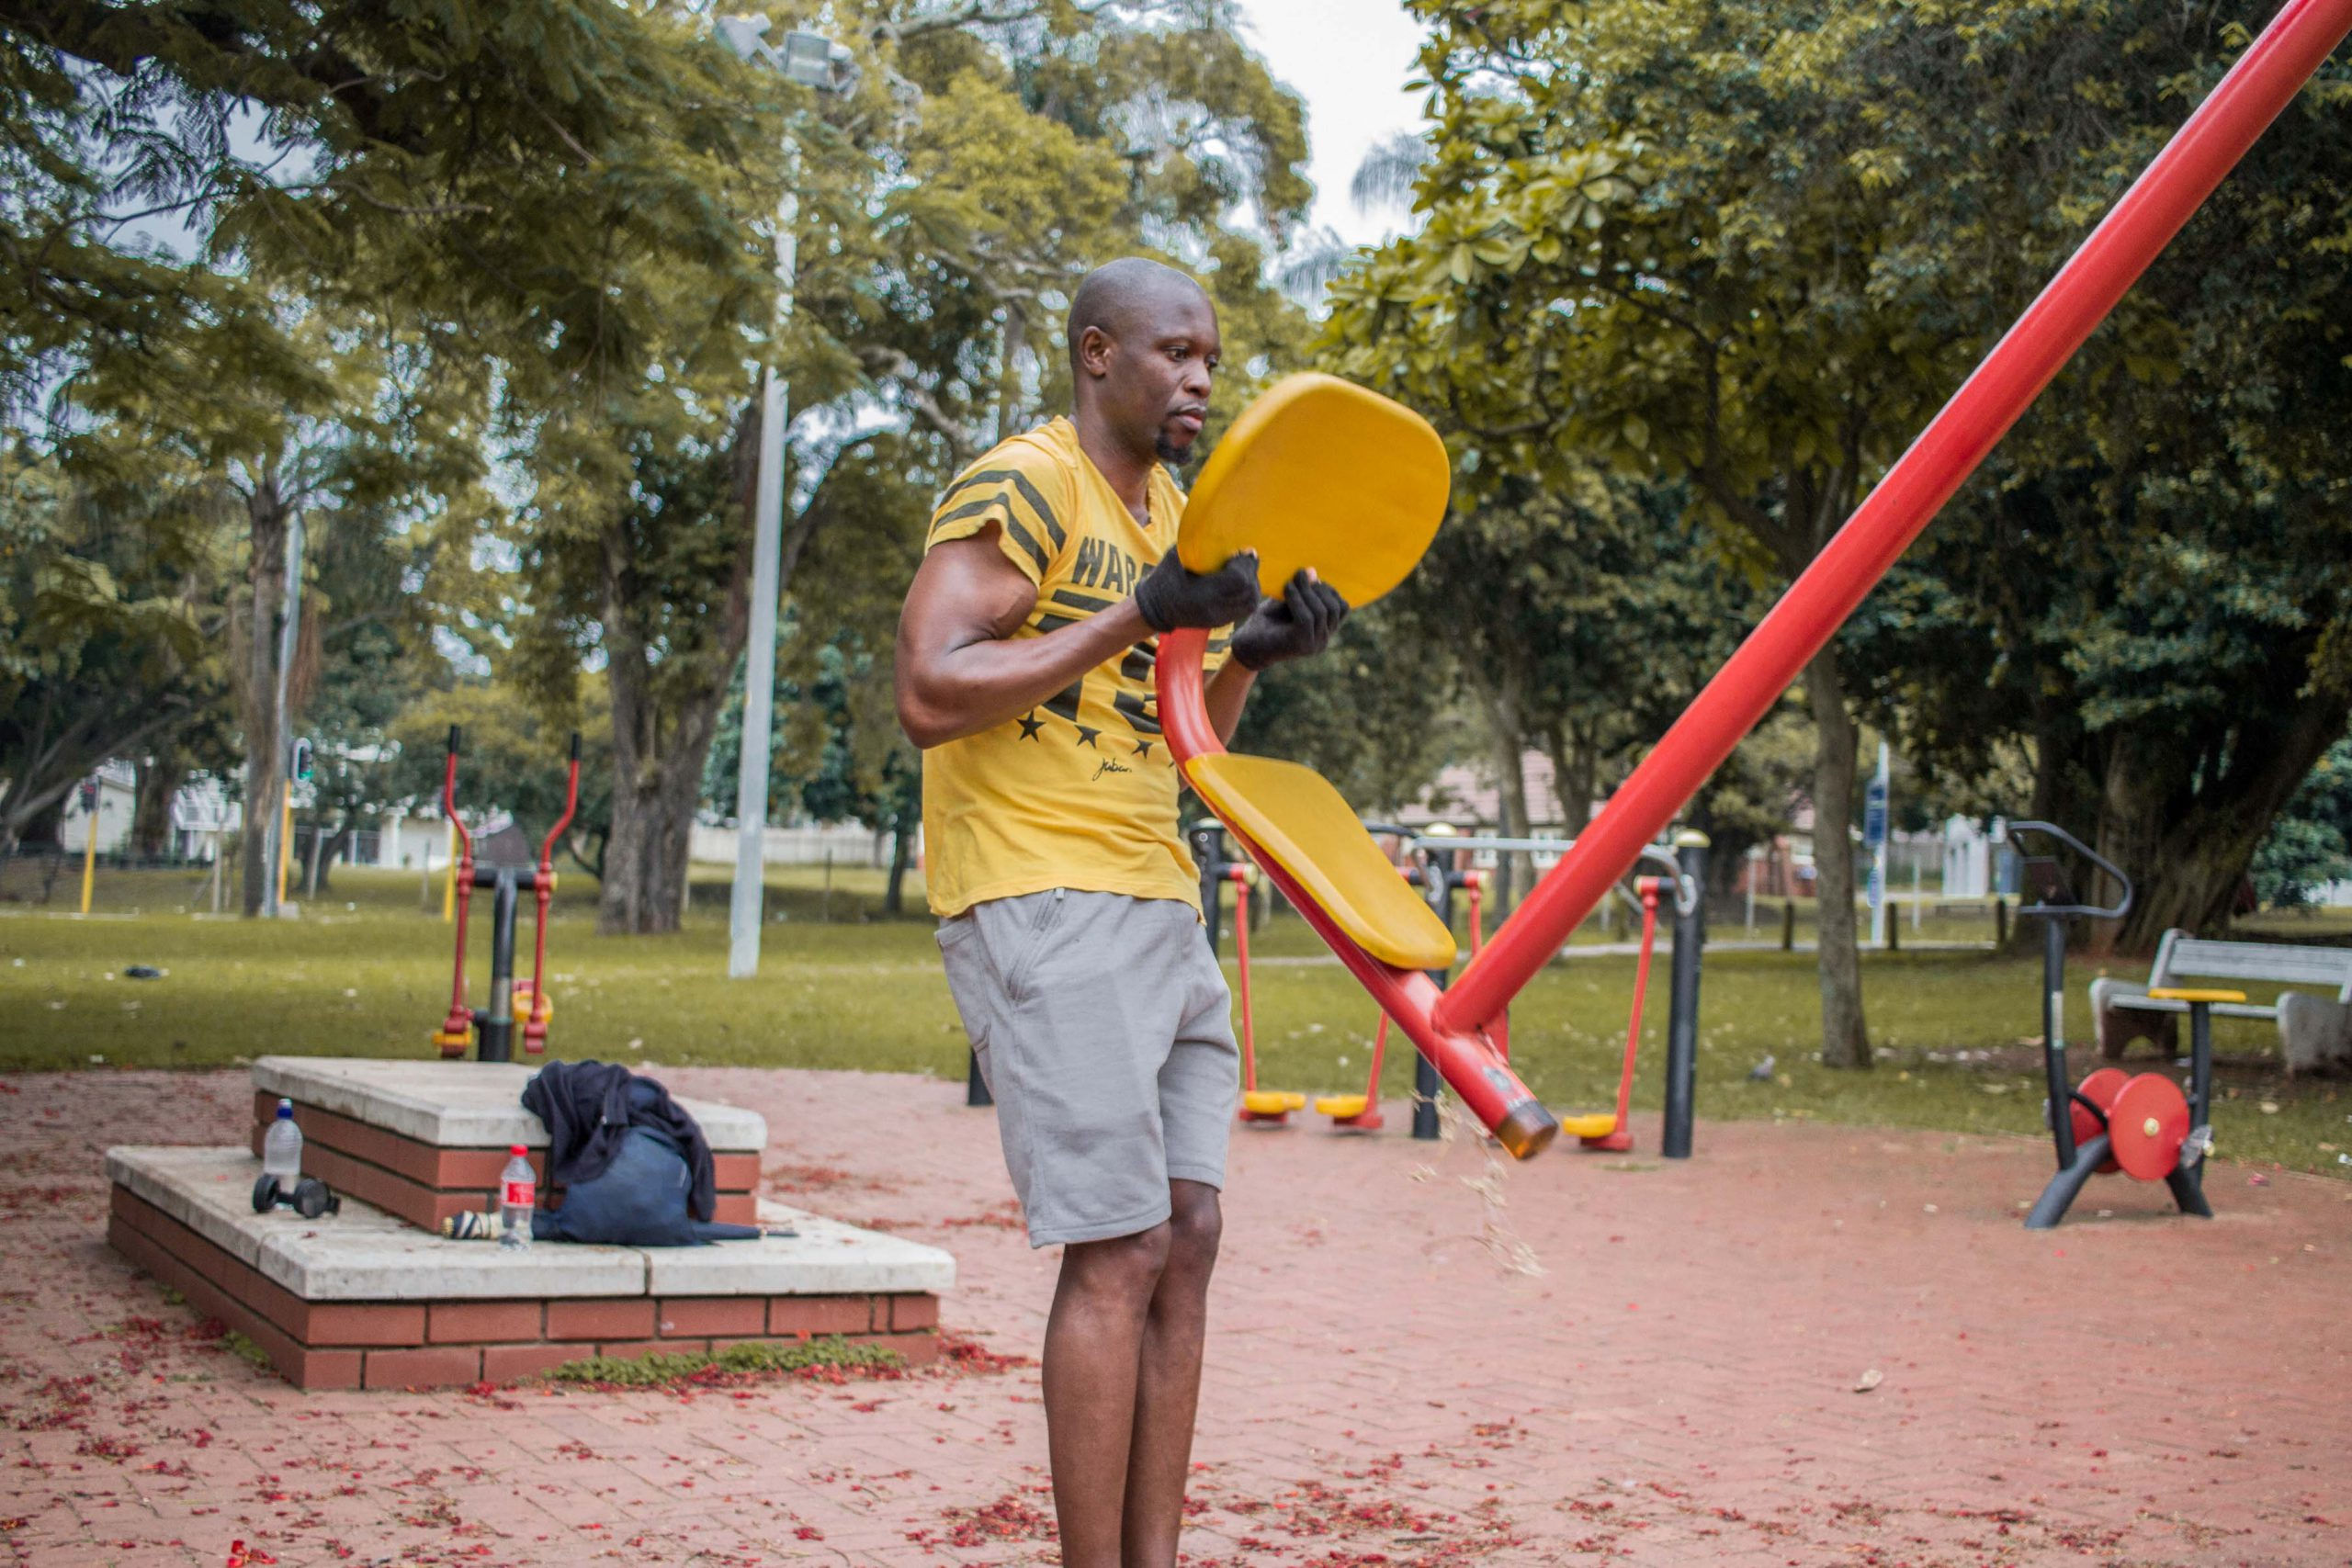 9 December 2019: Steven Mbobo lives in Morningside and finds the outdoor gym more enjoyable than a commercial gym.